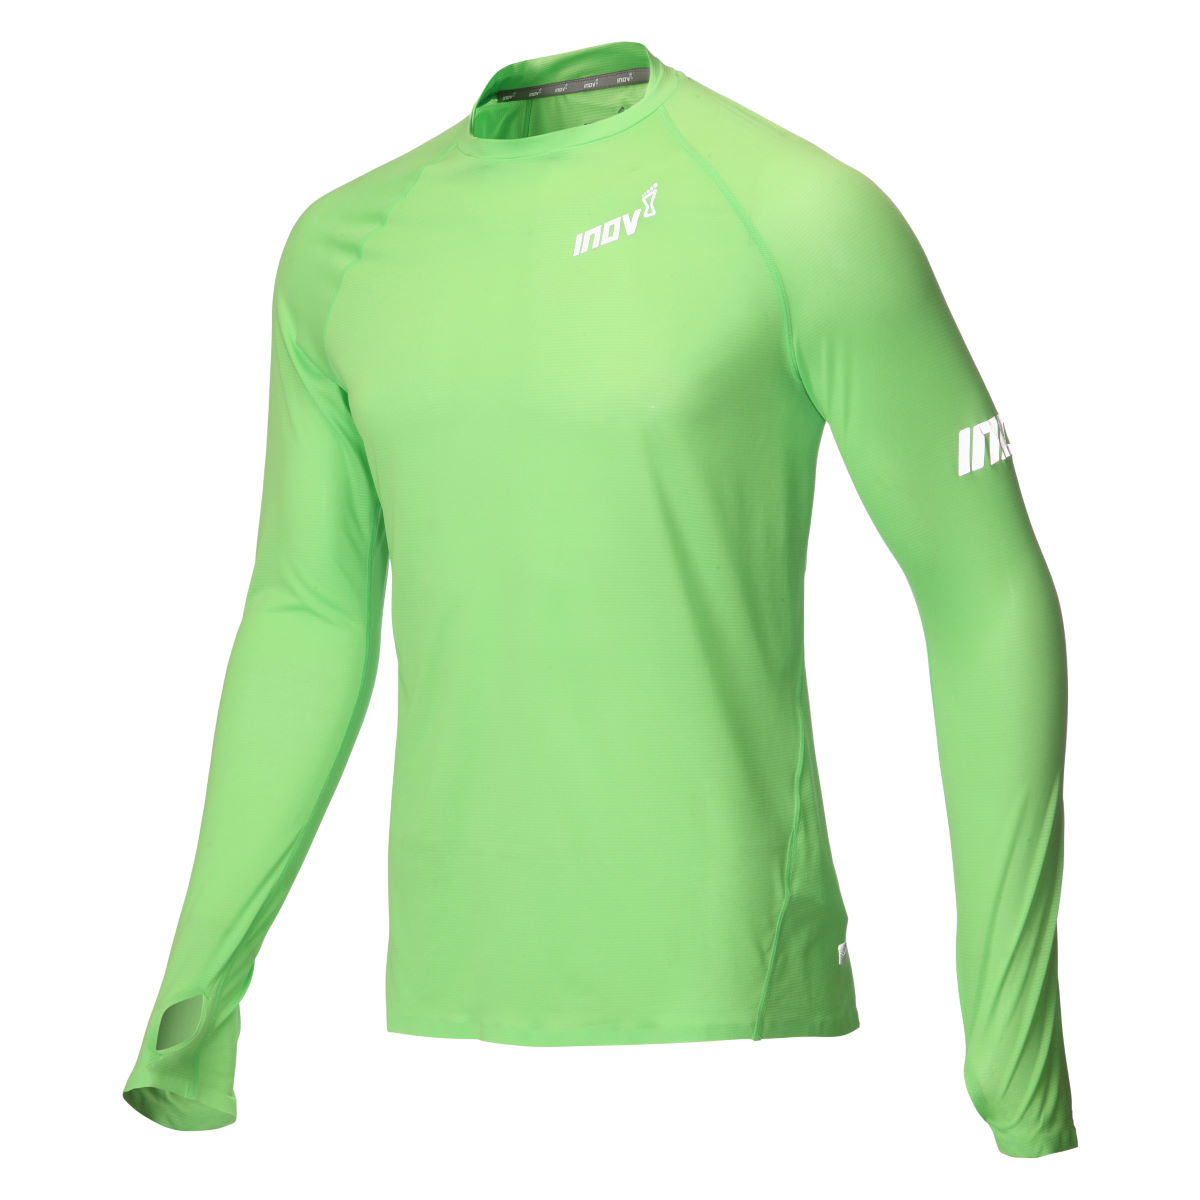 Maillot de corps Inov-8 AT/C (manches longues) - M Vert